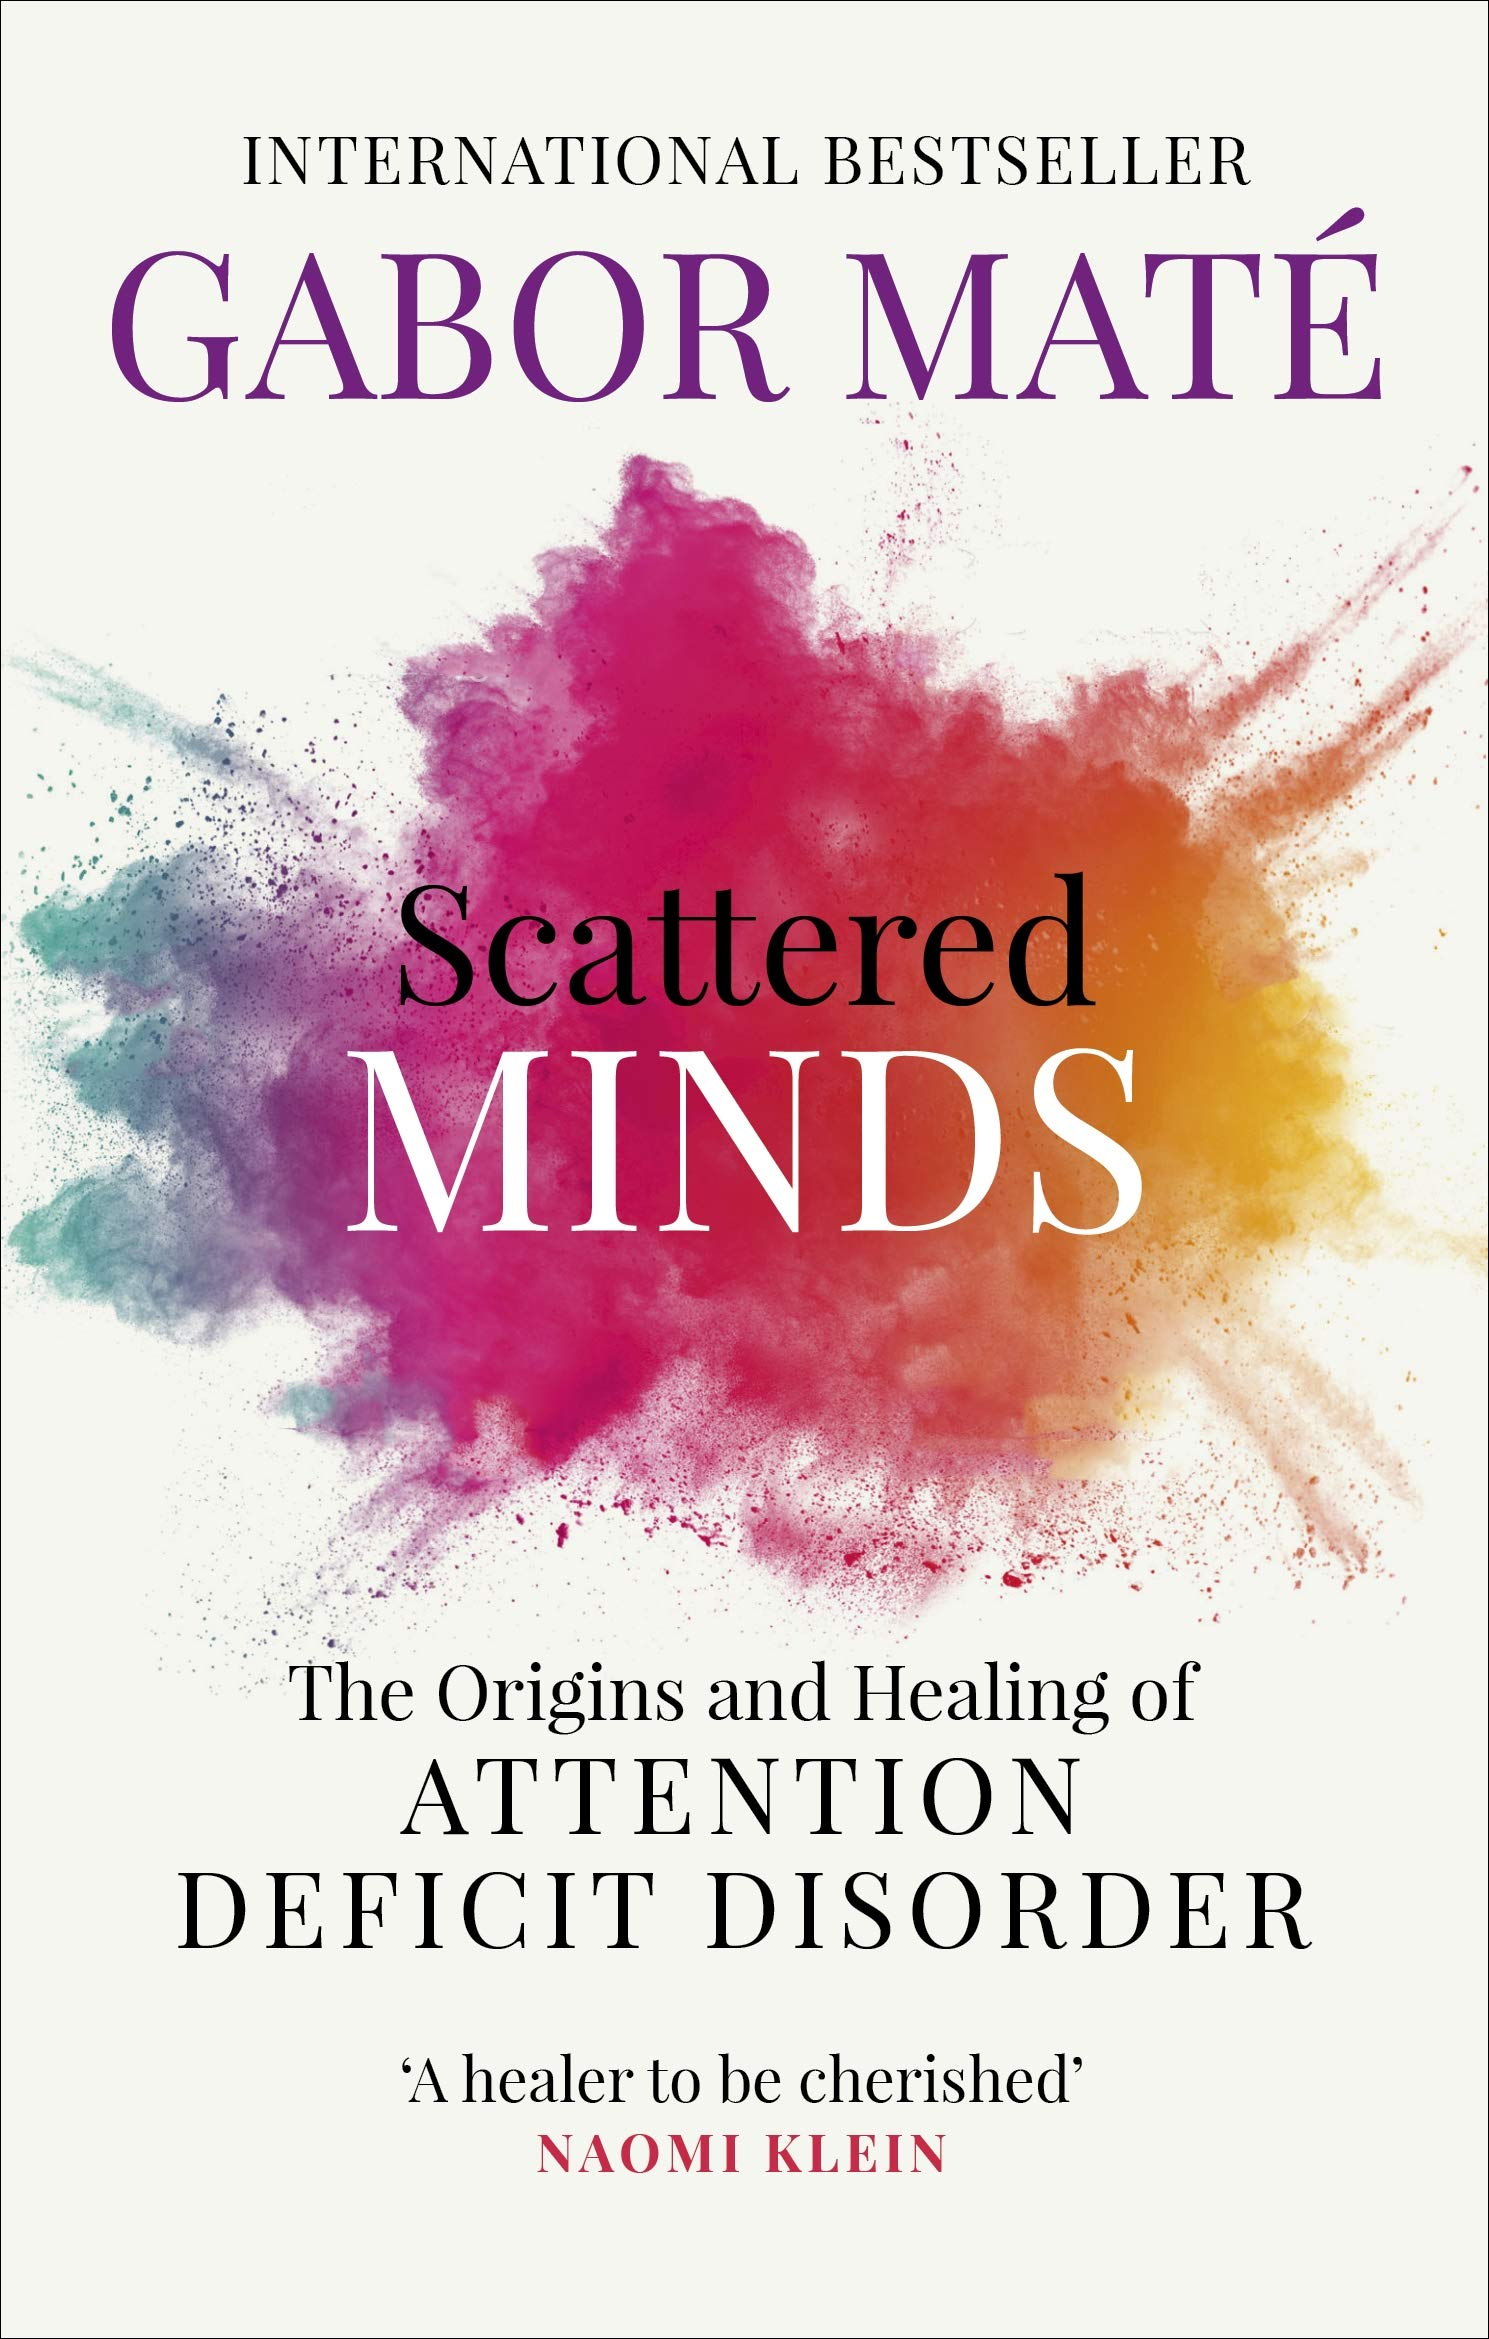 Image OfScattered Minds: The Origins And Healing Of Attention Deficit Disorder